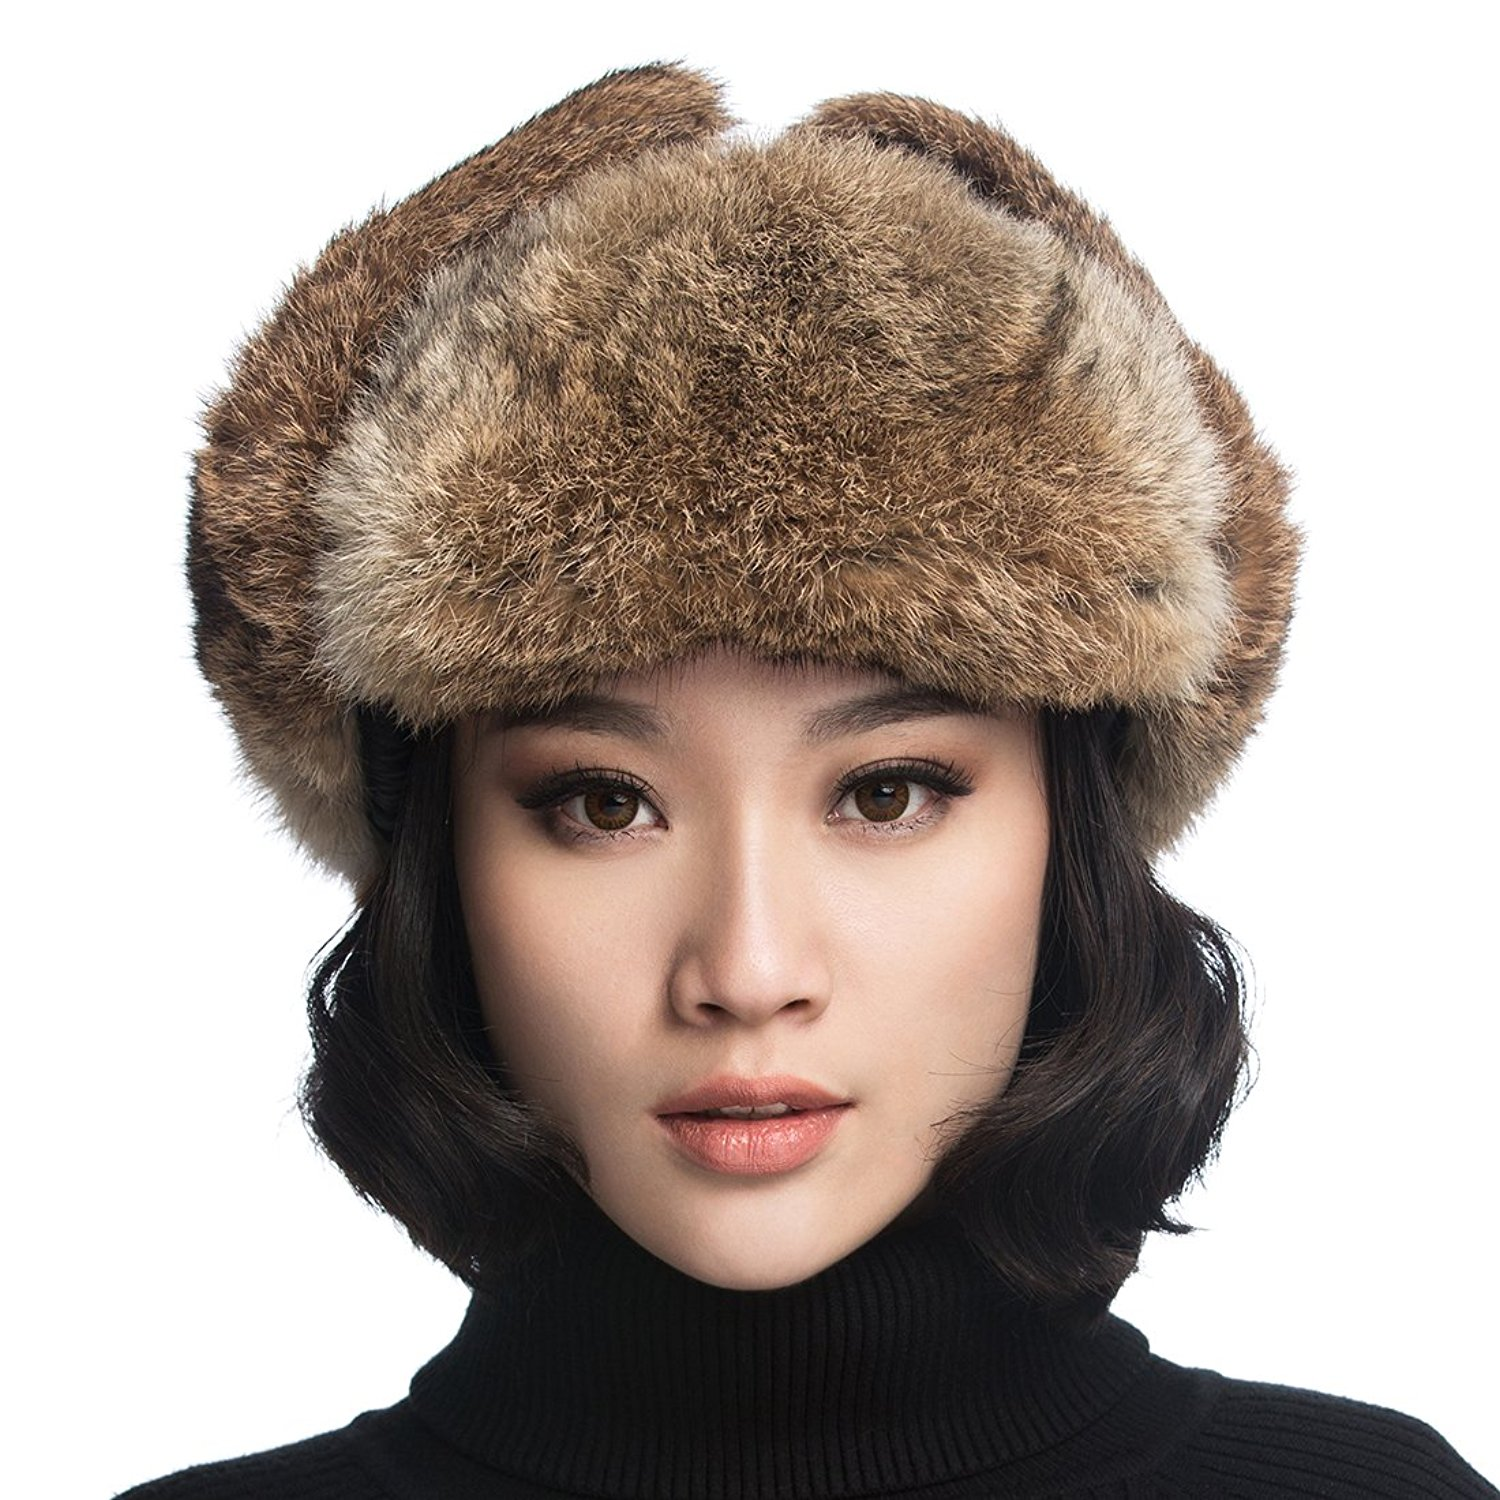 20bd807131c Get Quotations · URSFUR Rabbit Fur Aviator Hat Women Black Leather Winter  Bomber Cap Russian